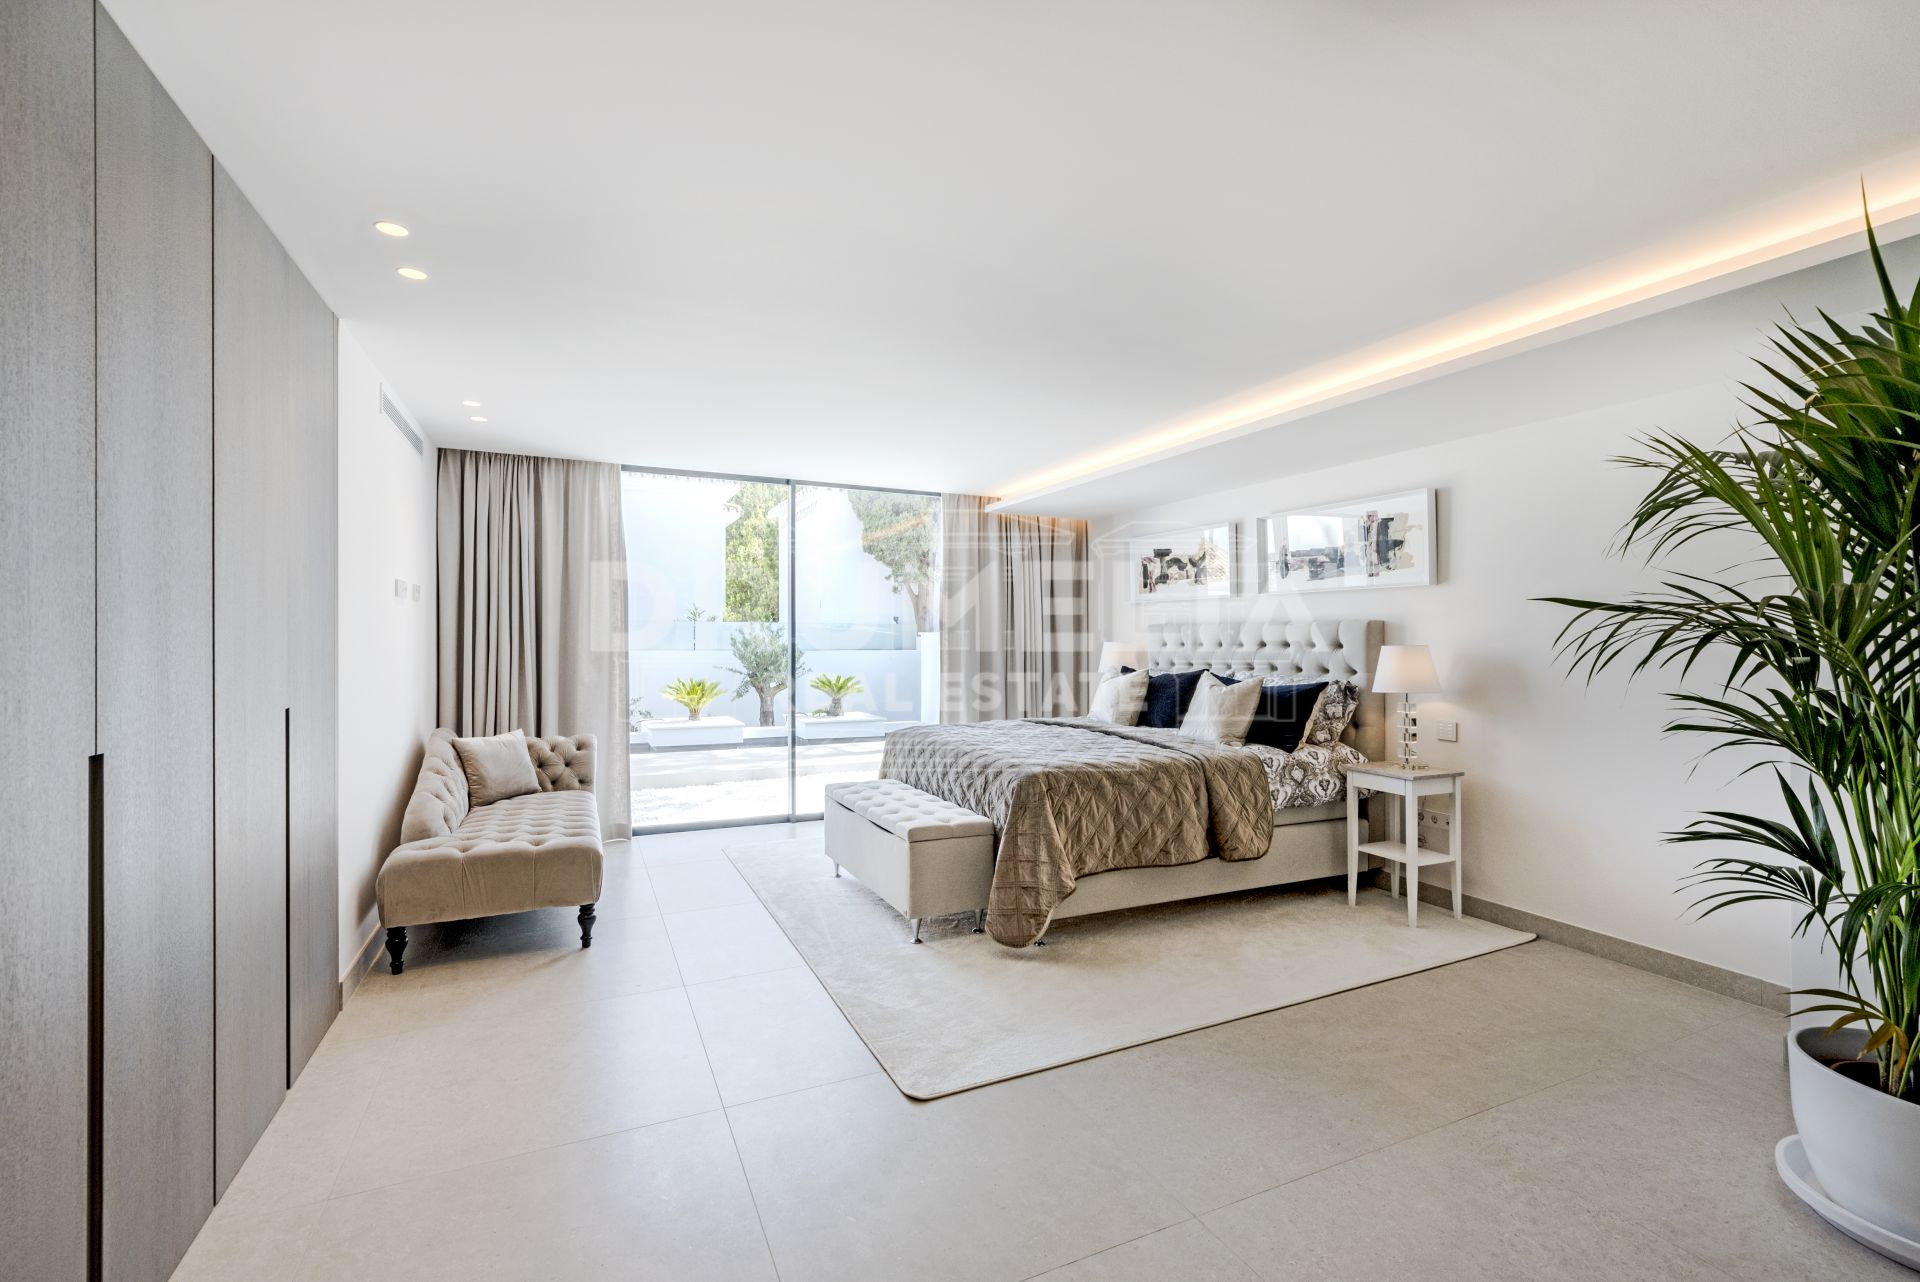 Nueva Andalucia, New Frontline Golf State-of-the-art Modern Villa, Aloha Golf Club, Nueva Andalucía, Marbella